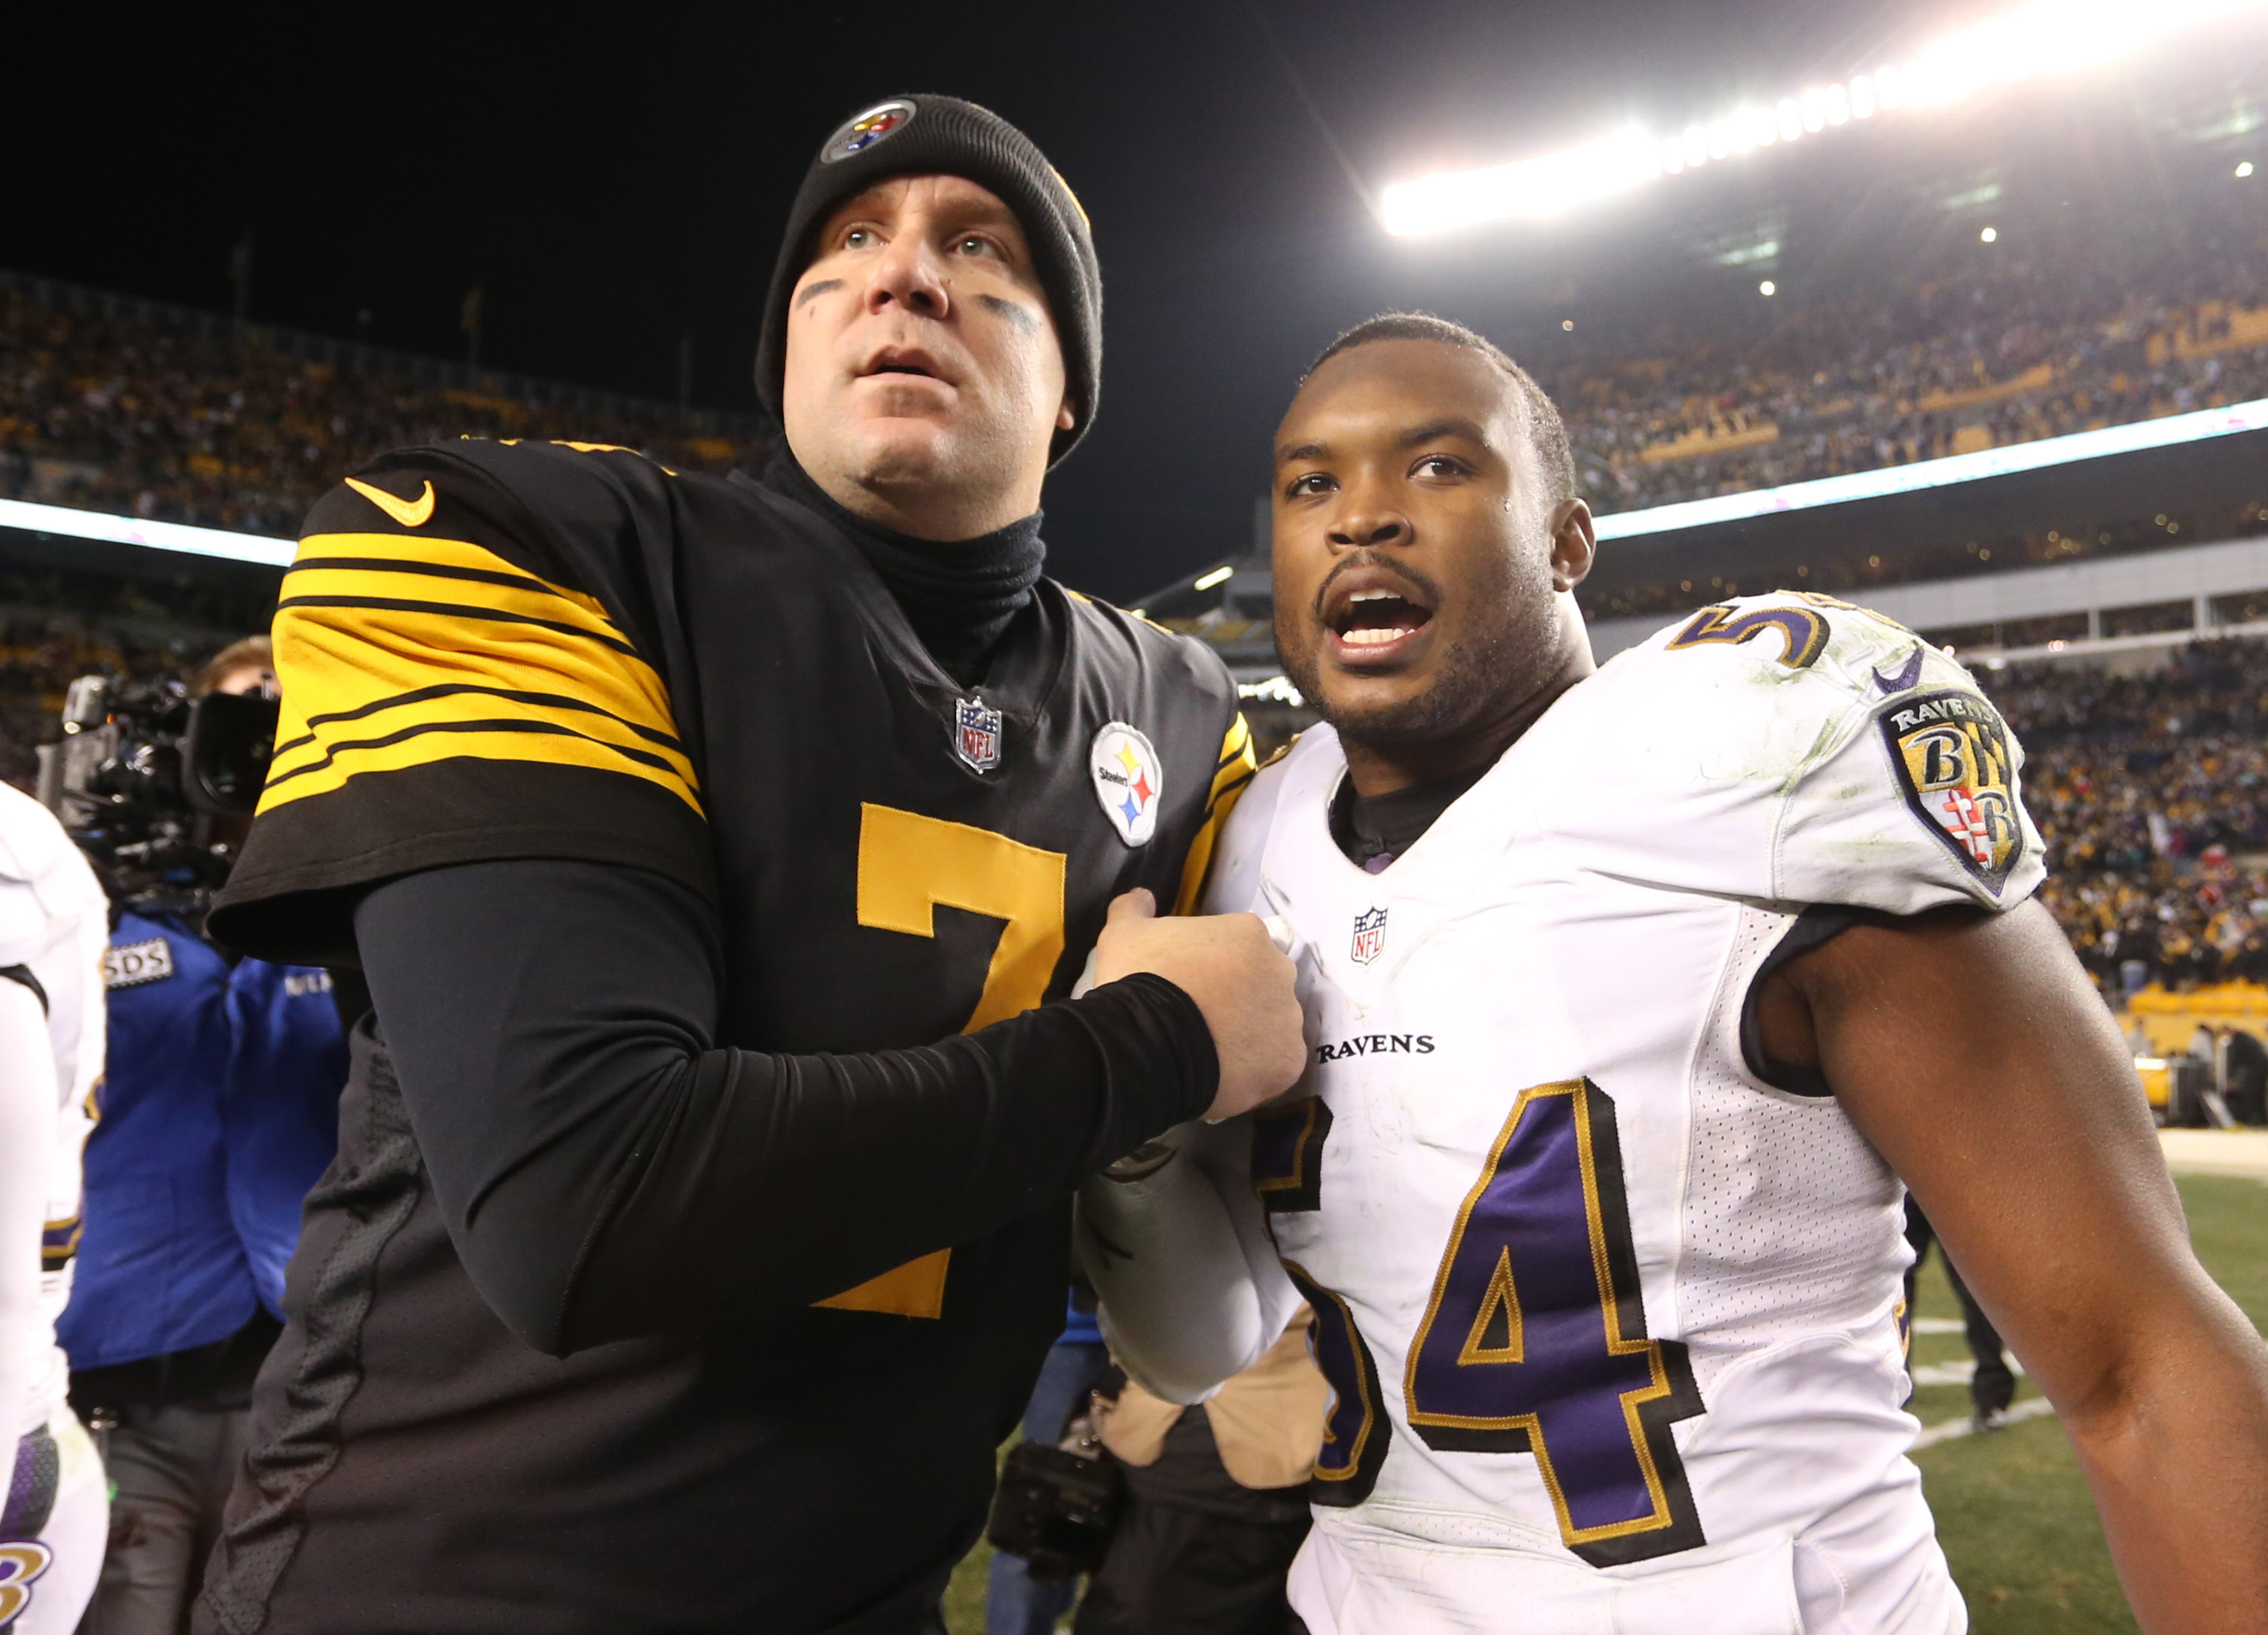 9775970-nfl-baltimore-ravens-at-pittsburgh-steelers